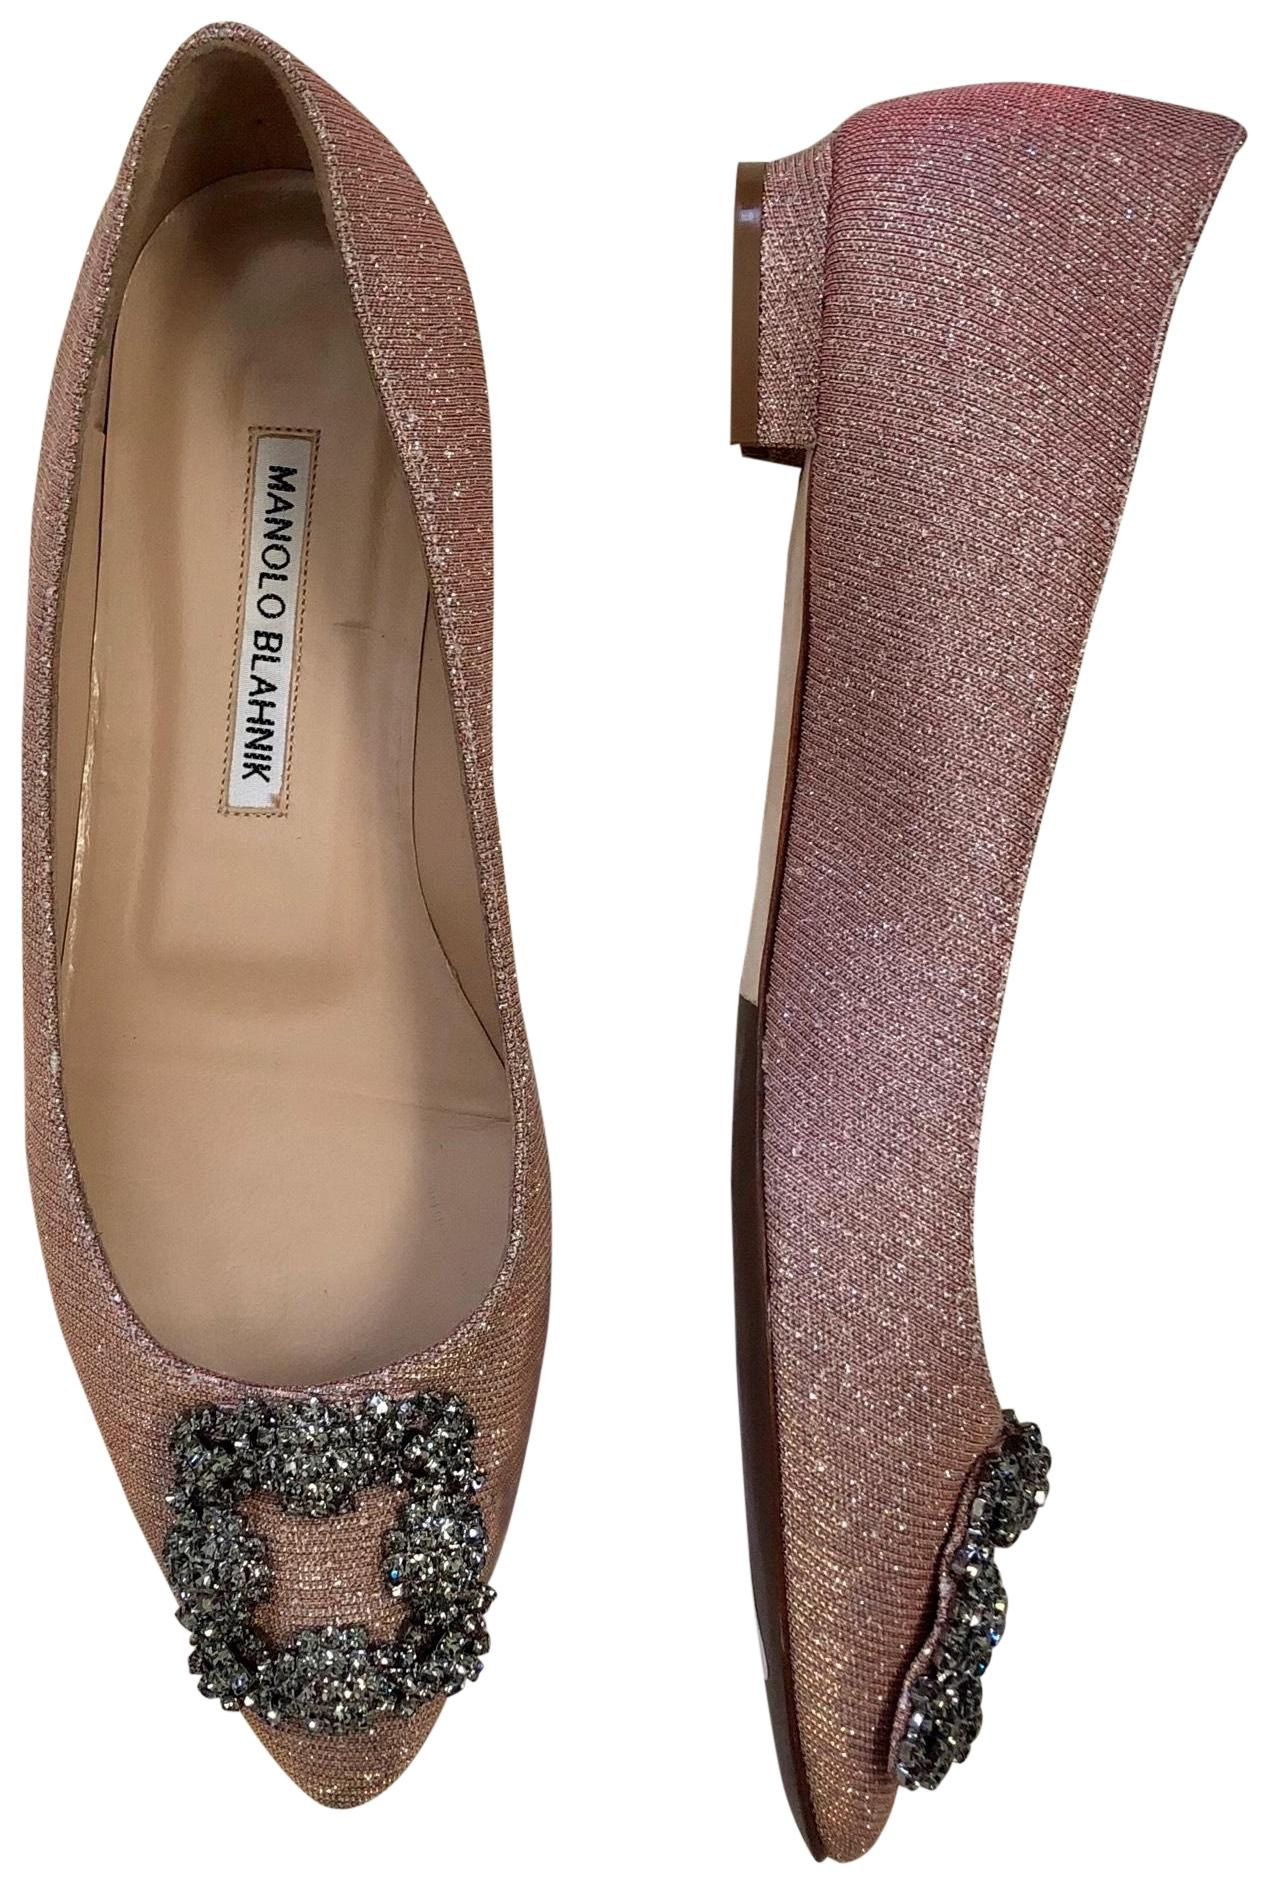 Manolo Blahnik Pink 'hangisi' Jeweled Pointy Toe Champagne Flats Size EU 37 (Approx. US 7) Regular (M, B)